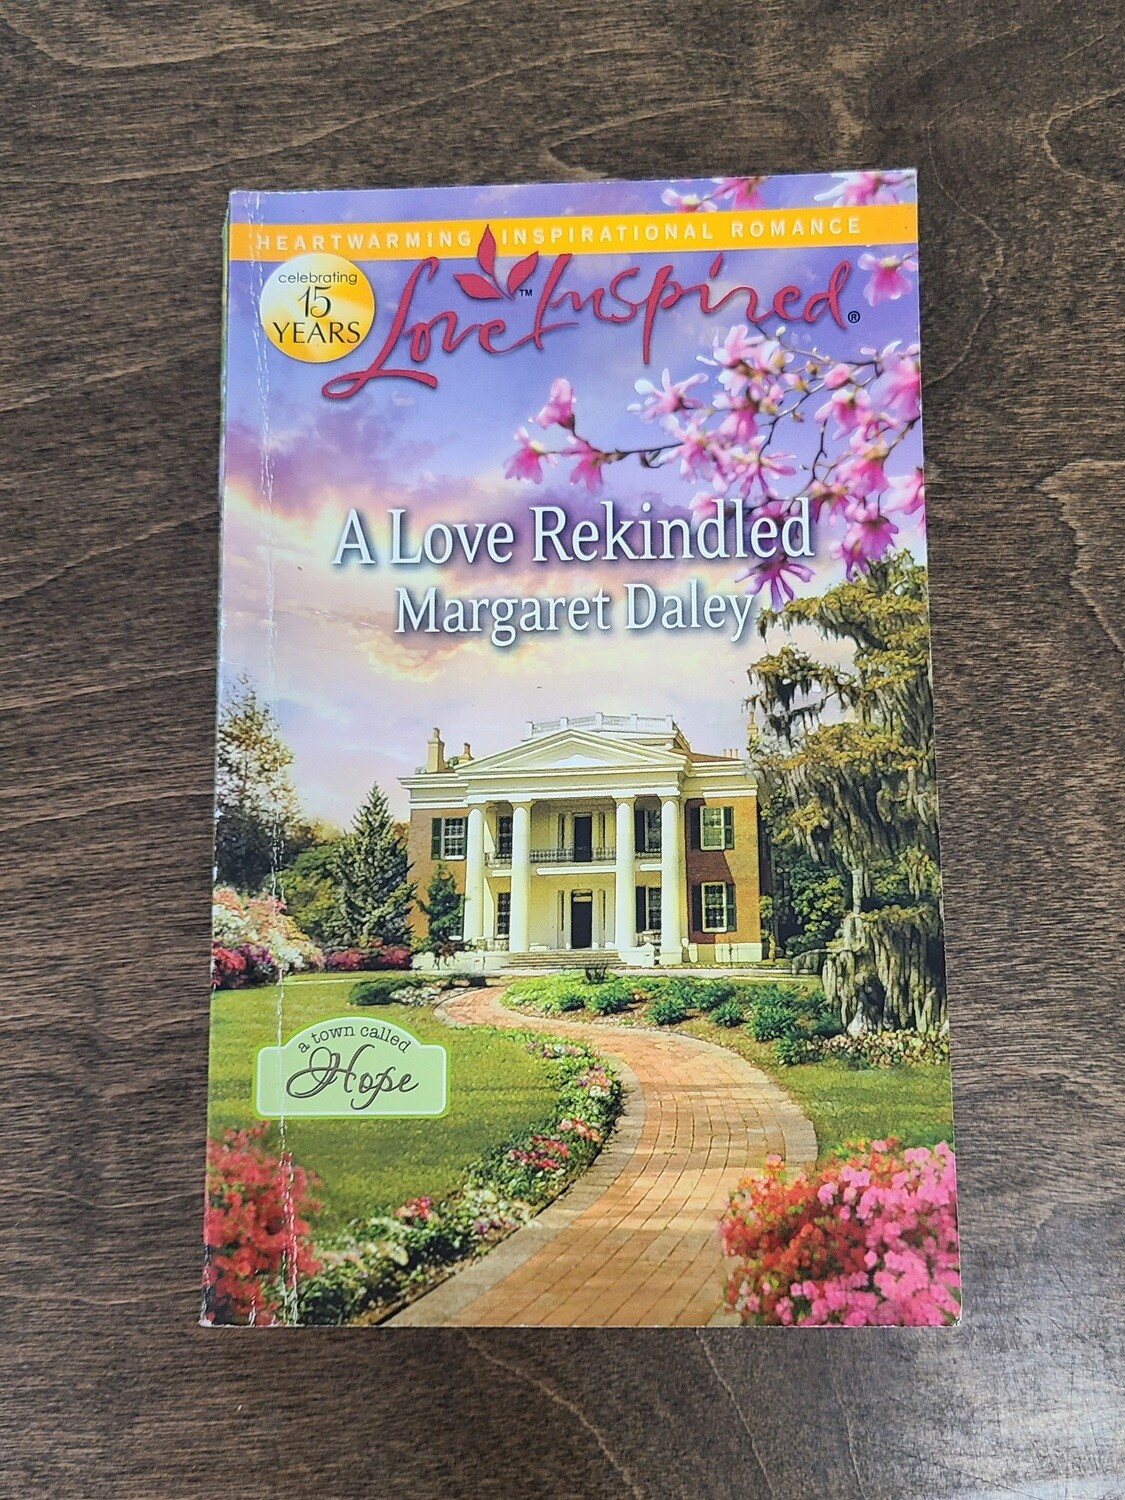 A Love Rekindled by Margaret Daley